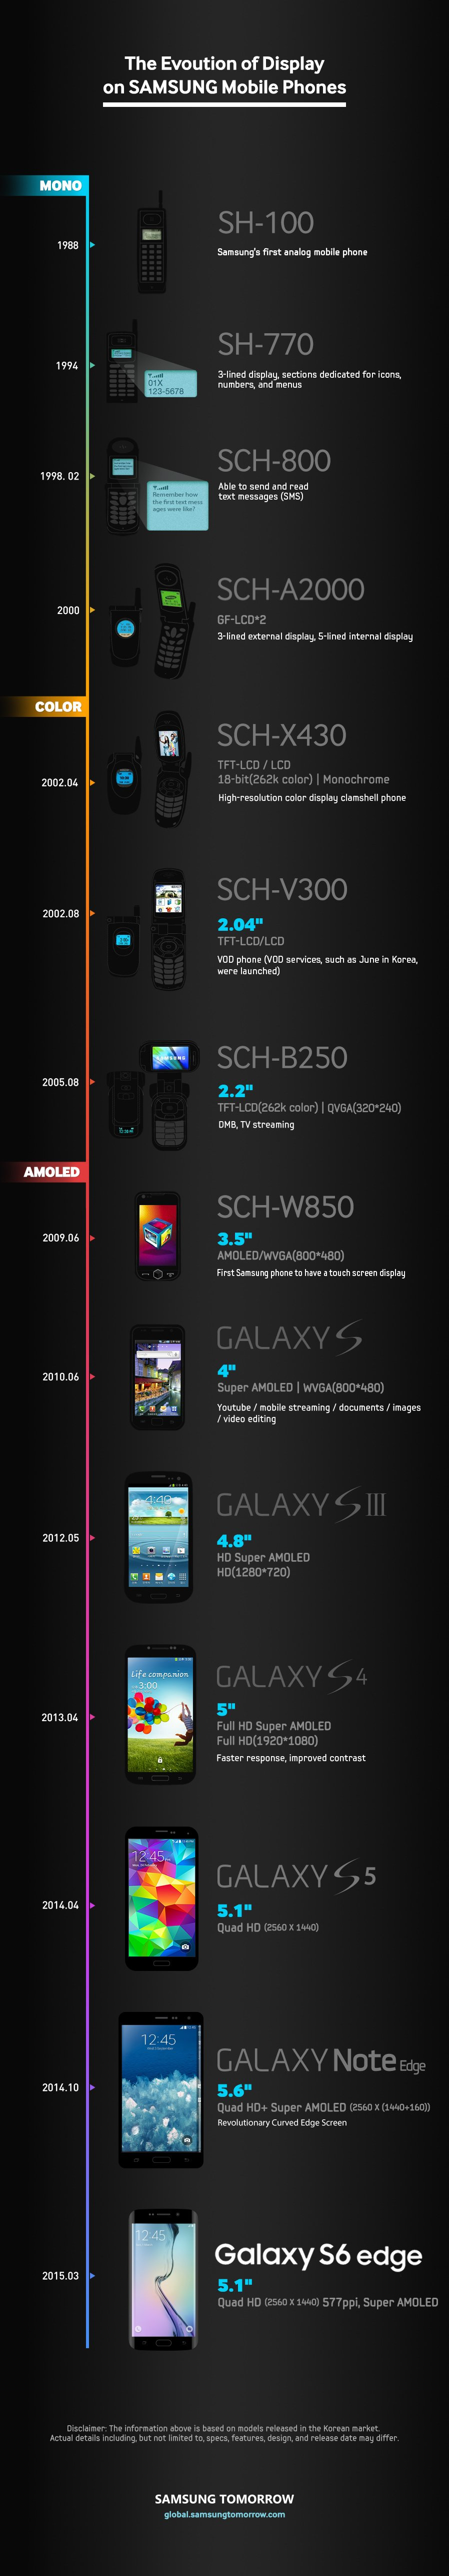 History-of-Smartphone_Display_info